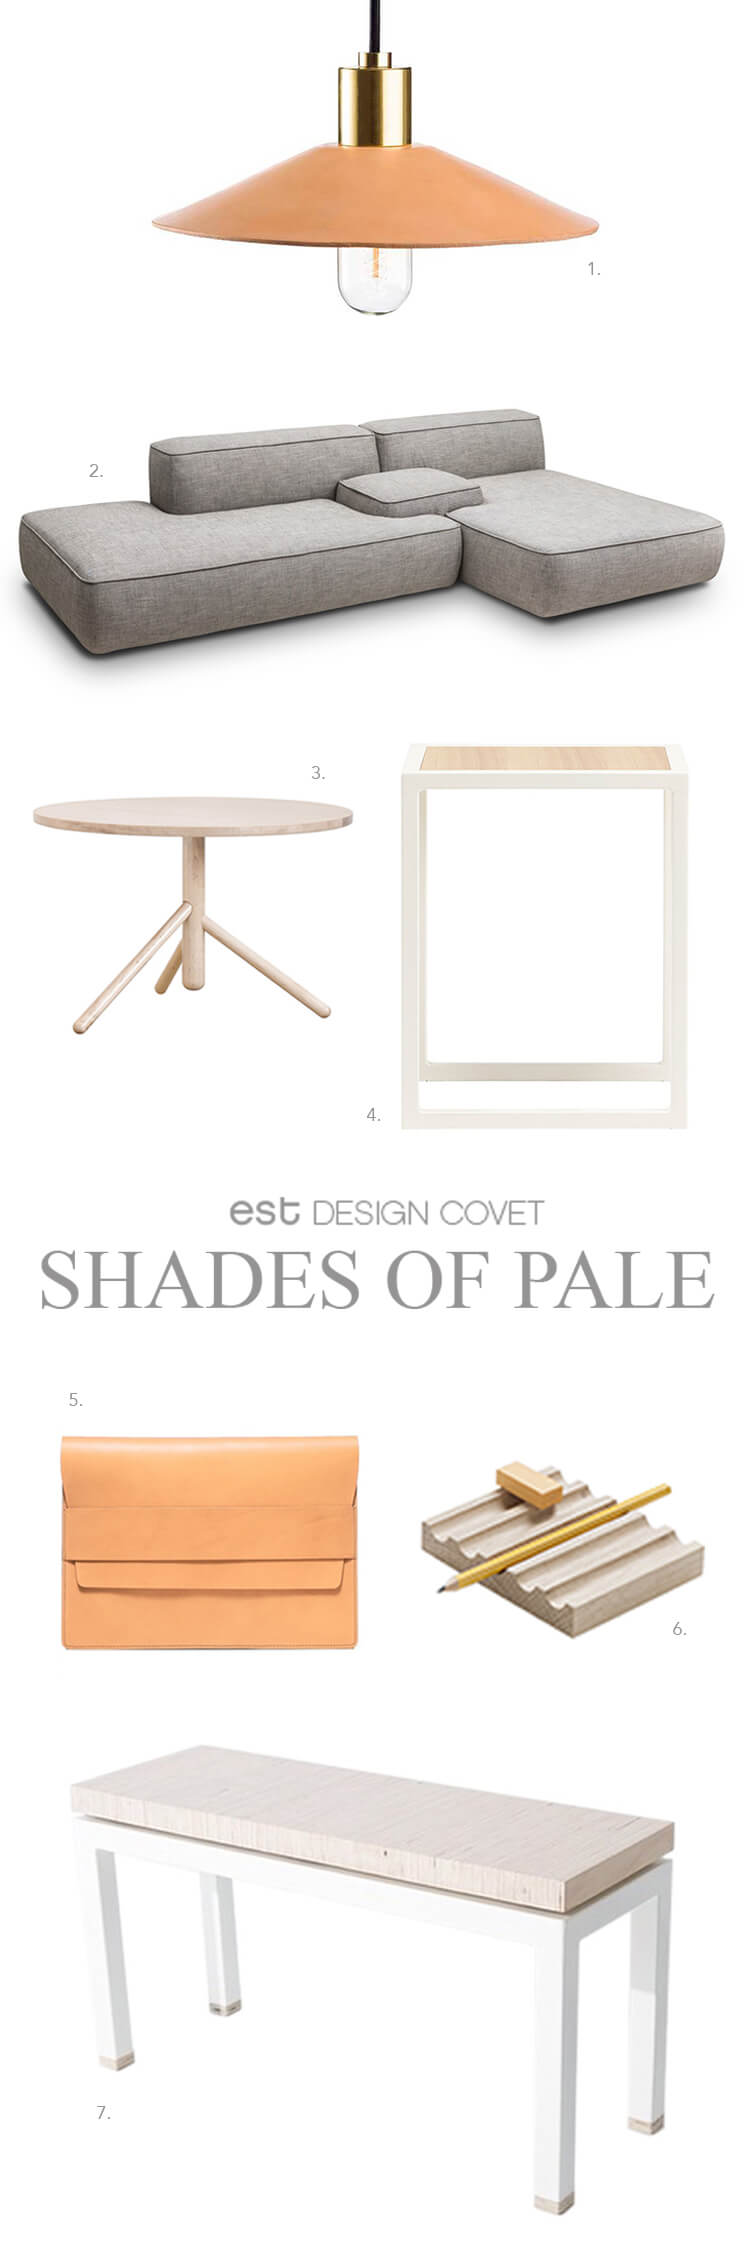 Shades of Pale 2